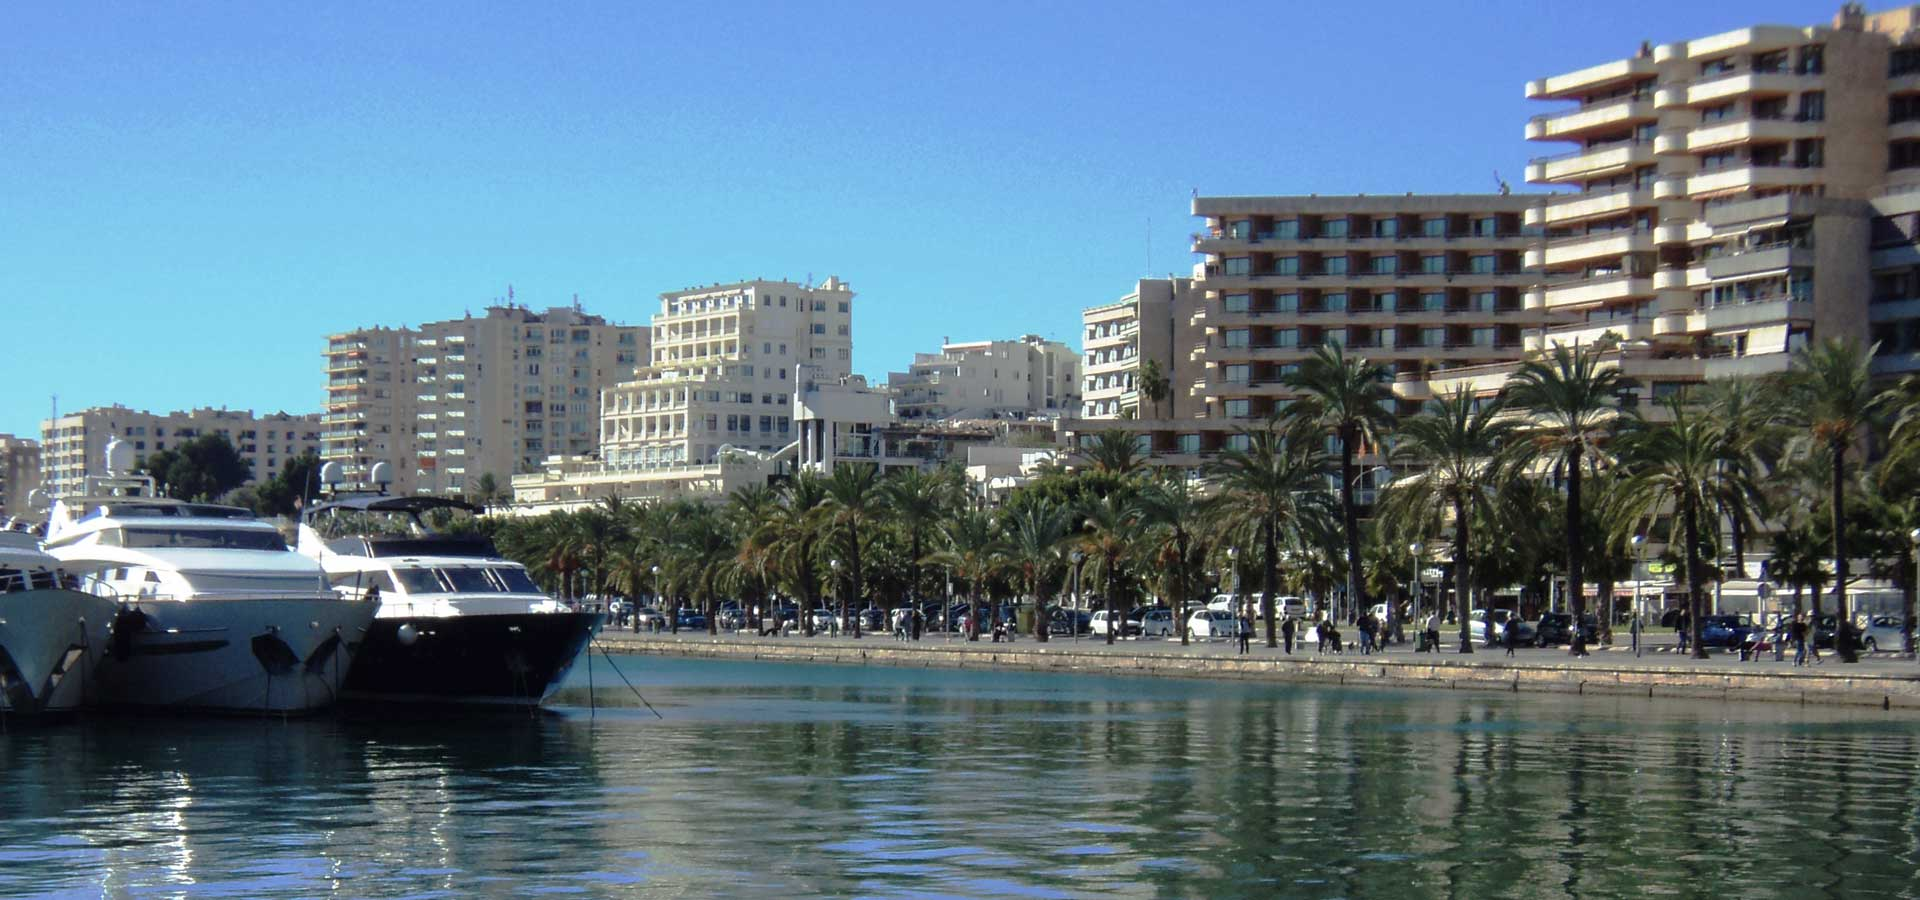 Paseo Maritimo Palma de Mallorca Penthouses Apartments for sale buy real estate property search Casafari